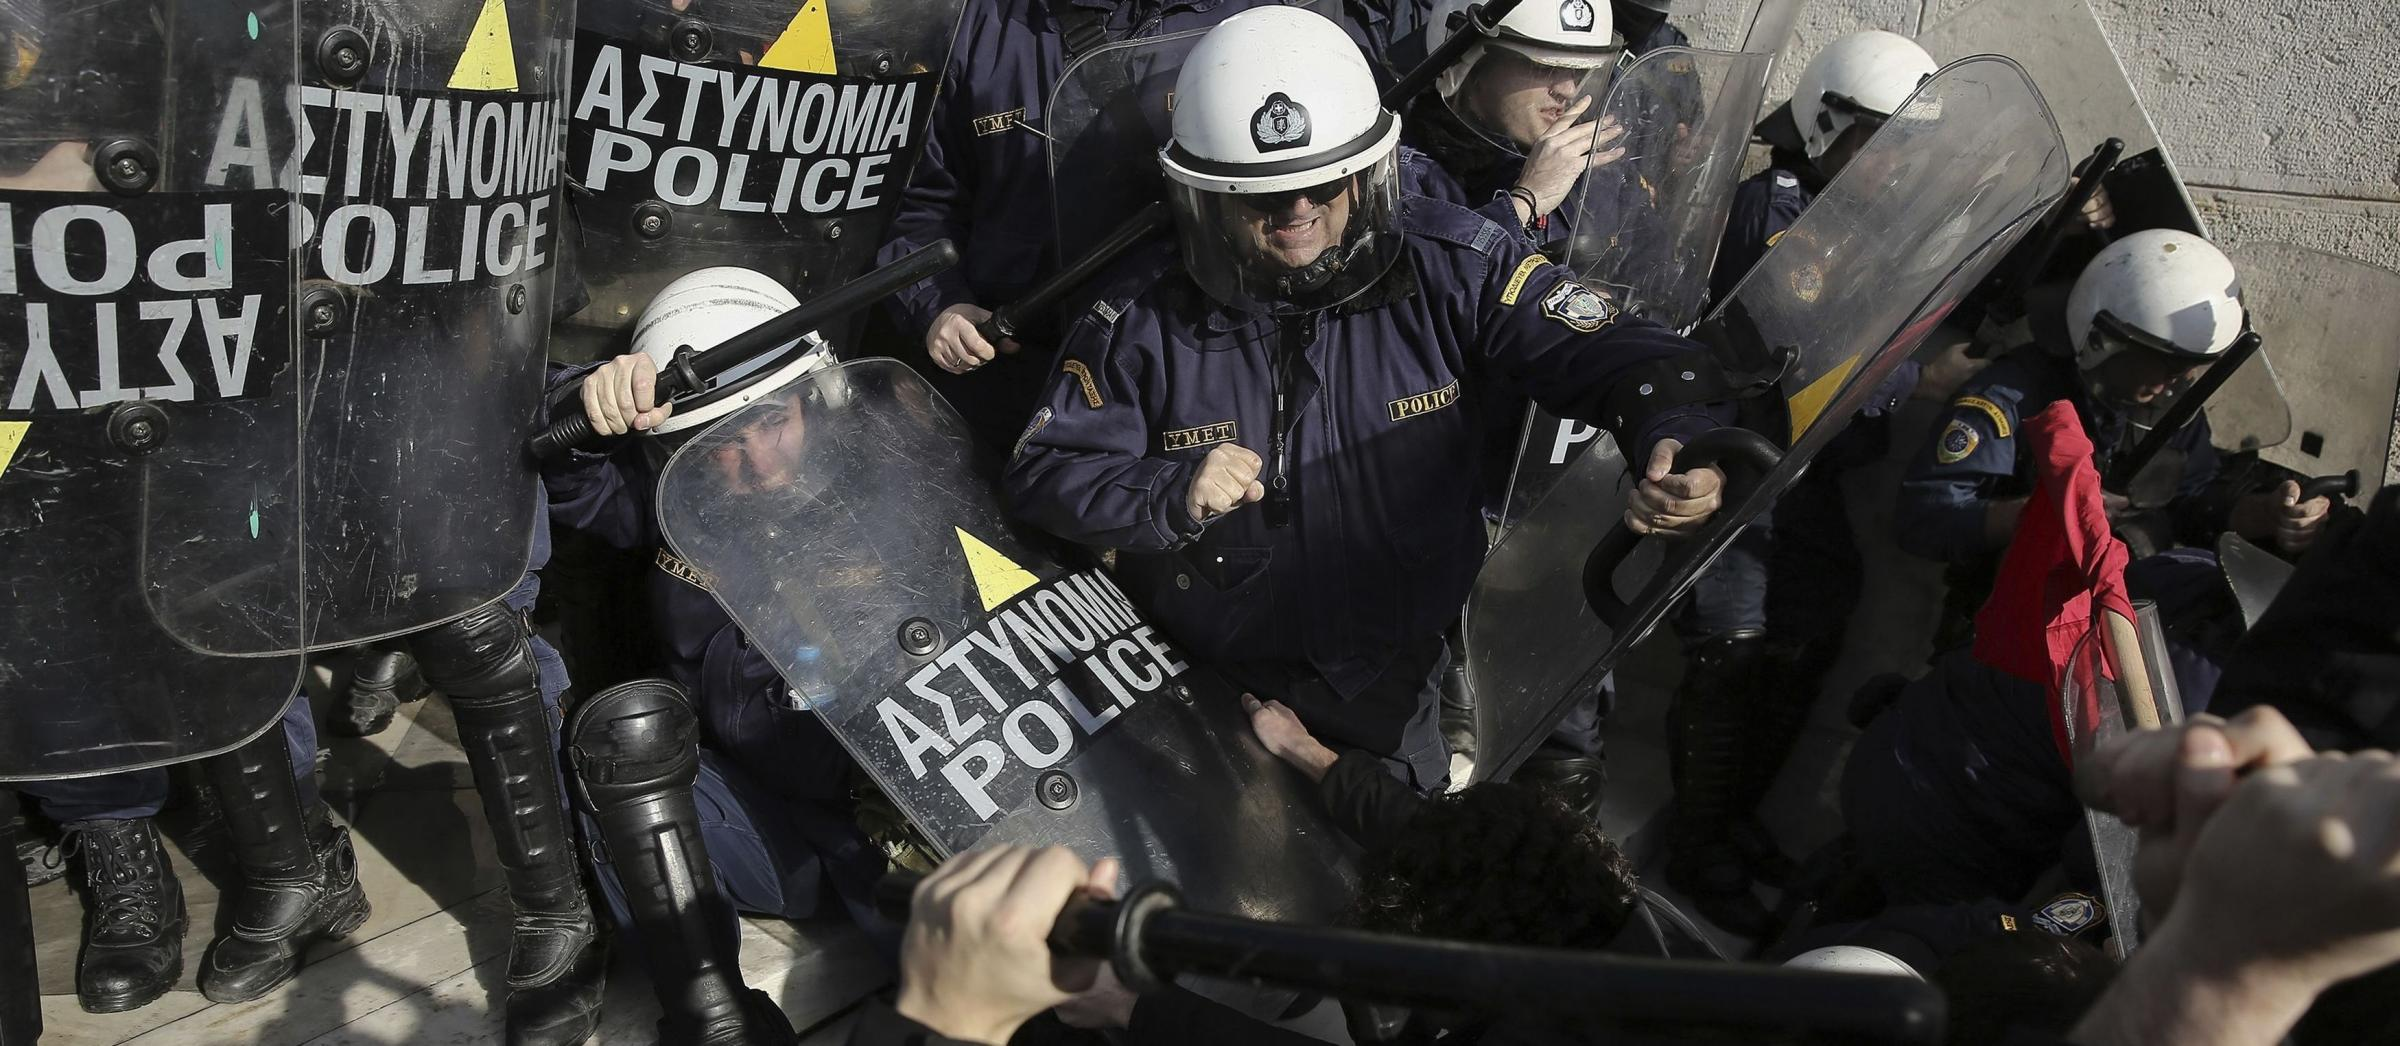 Protesters tussled with police on the parliament steps of the capital. Photograph: AP